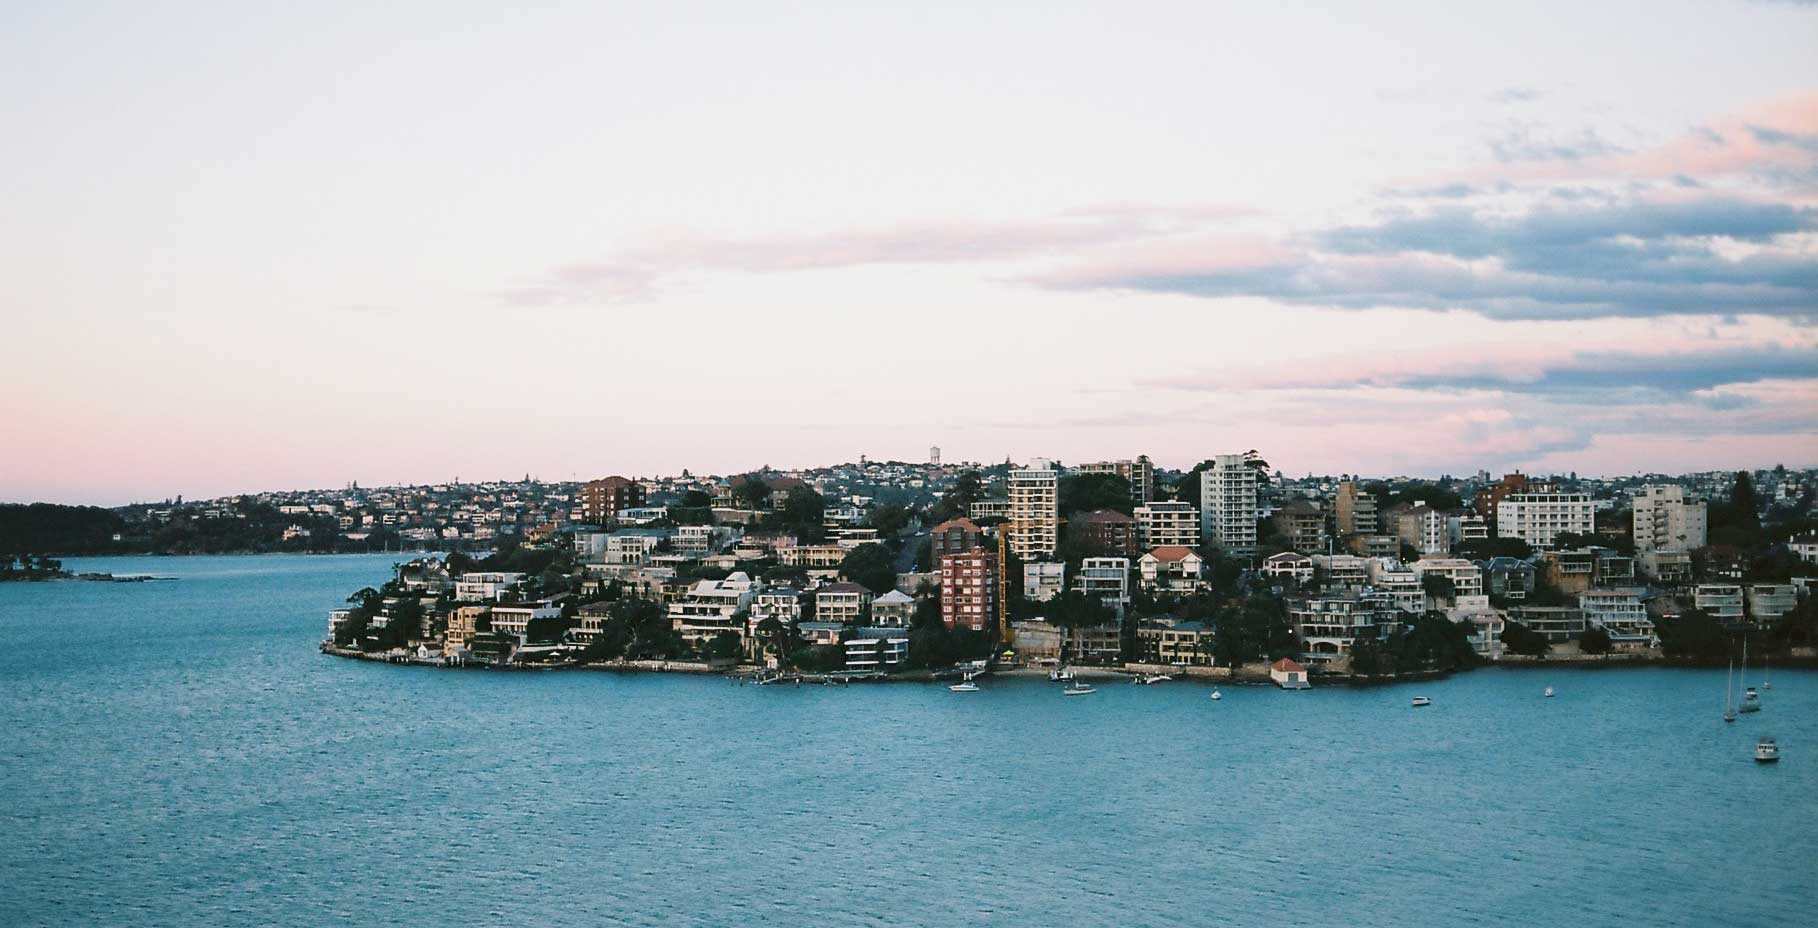 A view of Sydney's various waterfront flats.